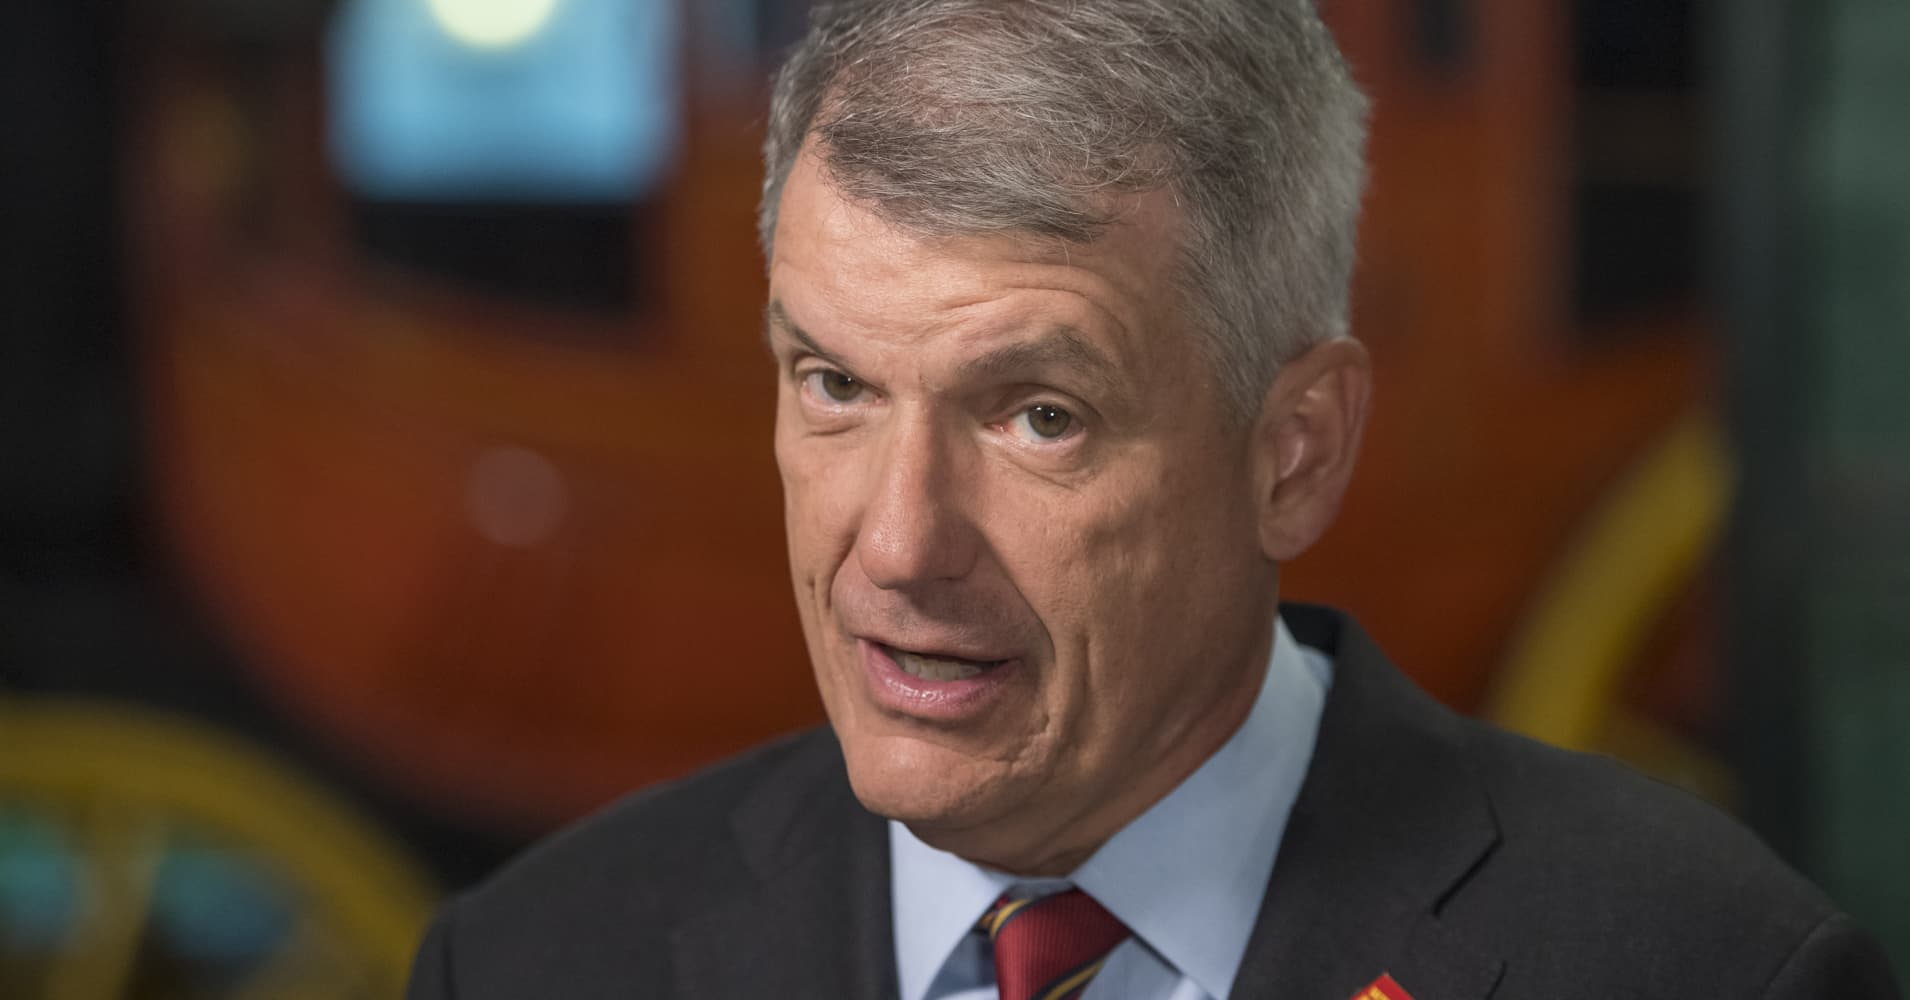 Wells Fargo 'not completely out of the woods' but stock can move higher: Bank analyst